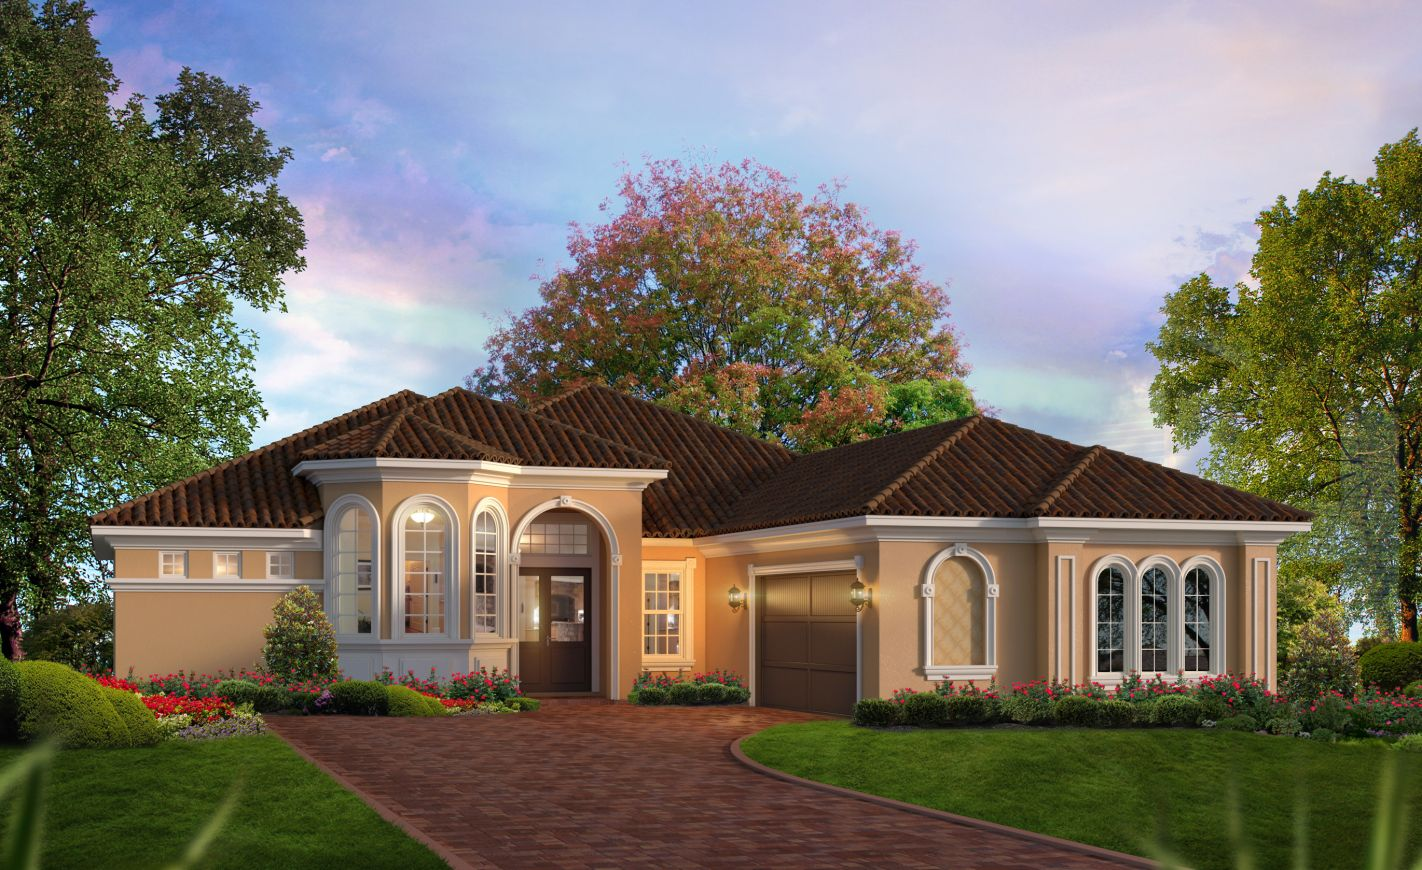 Ormond Beach Homes for Sale - The Melissa at Plantation Bay